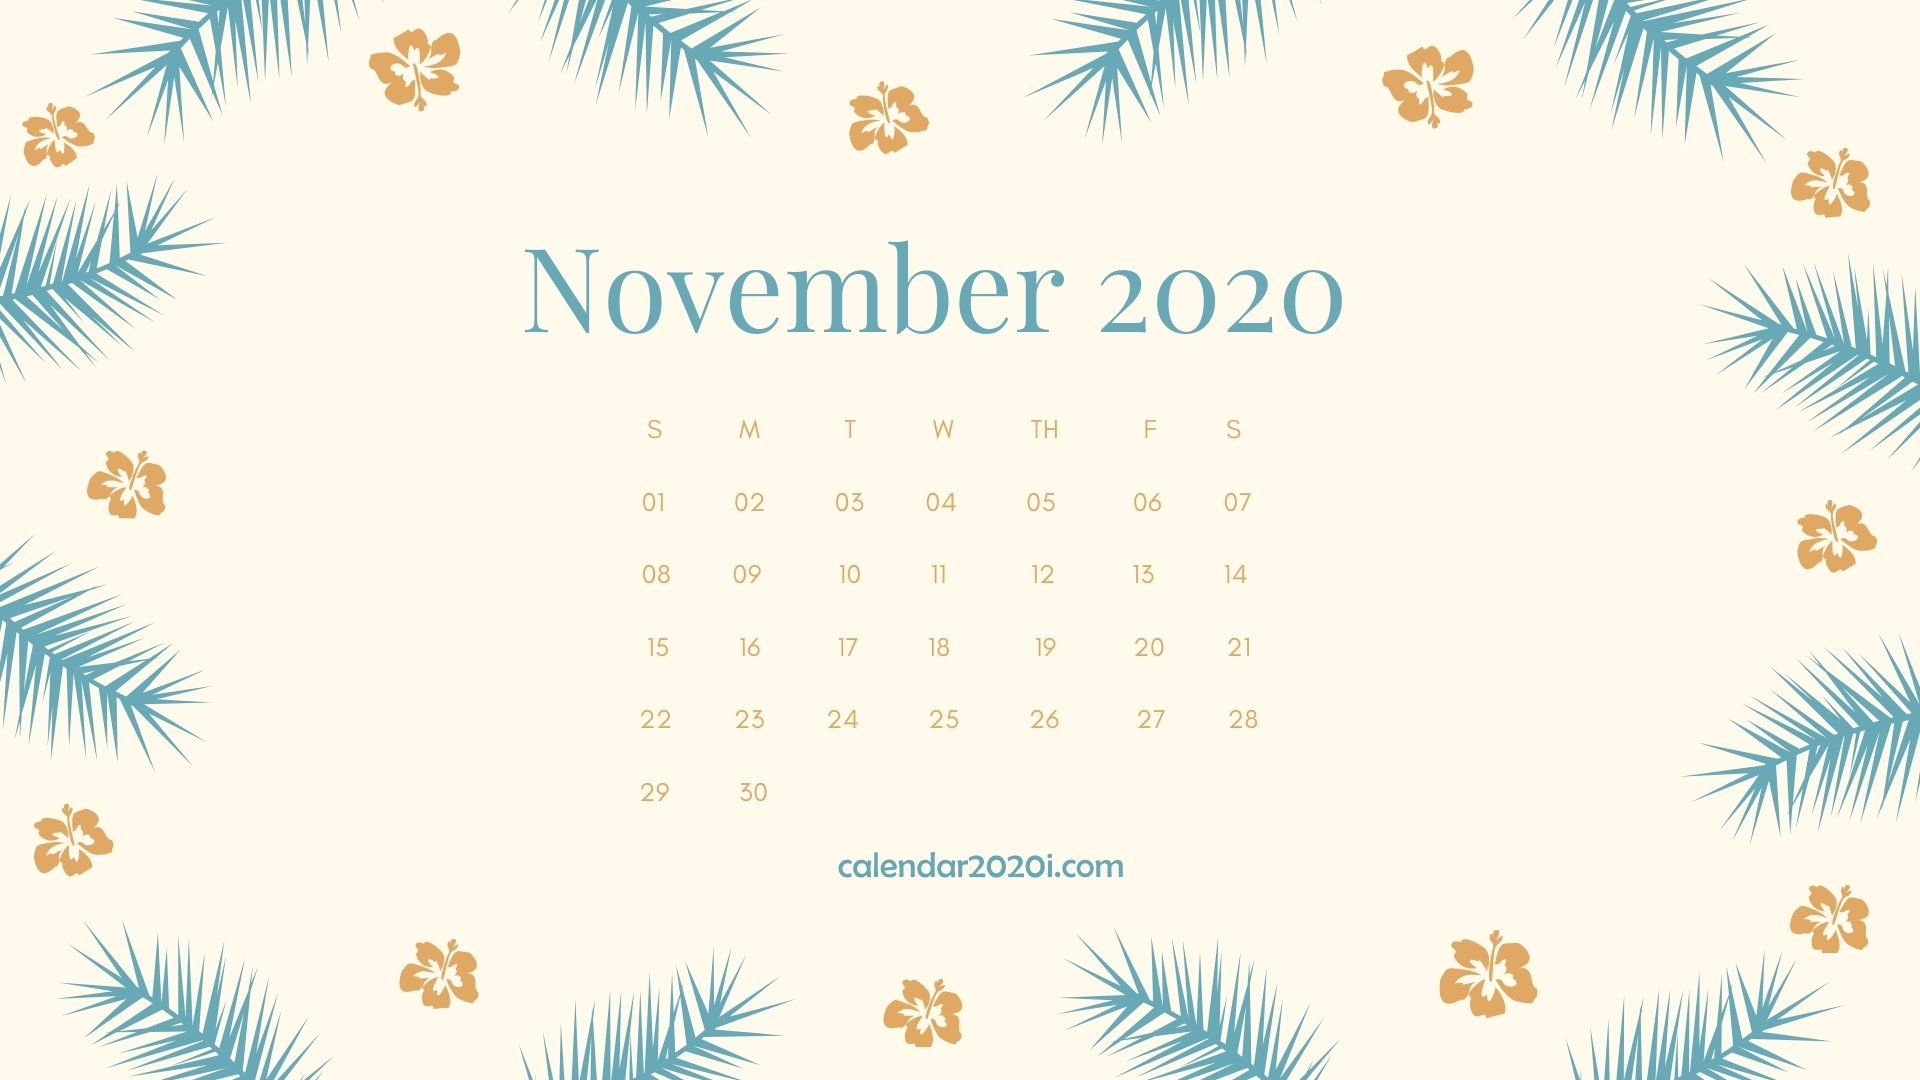 November 2020 Calendar Desktop Wallpaper Calendar 2020 in 2019 1920x1080